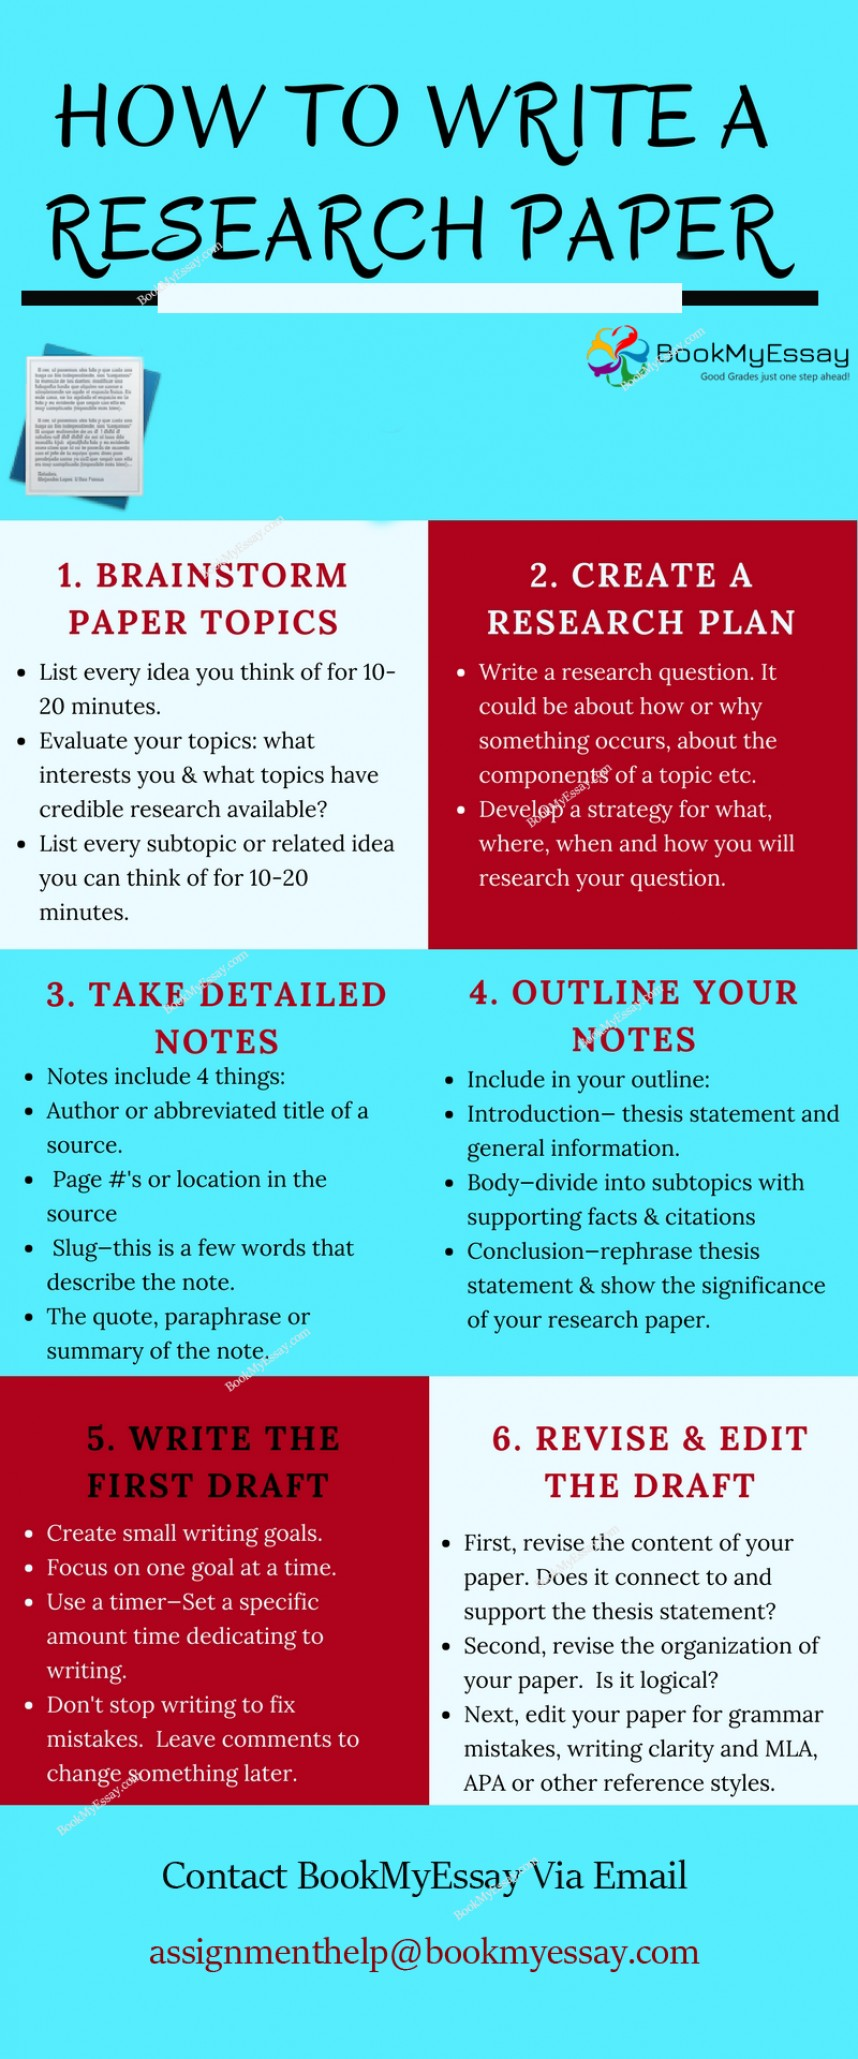 002 Researchs Writing Service Outstanding Research Papers College Paper Reviews Services In Chennai Cheap